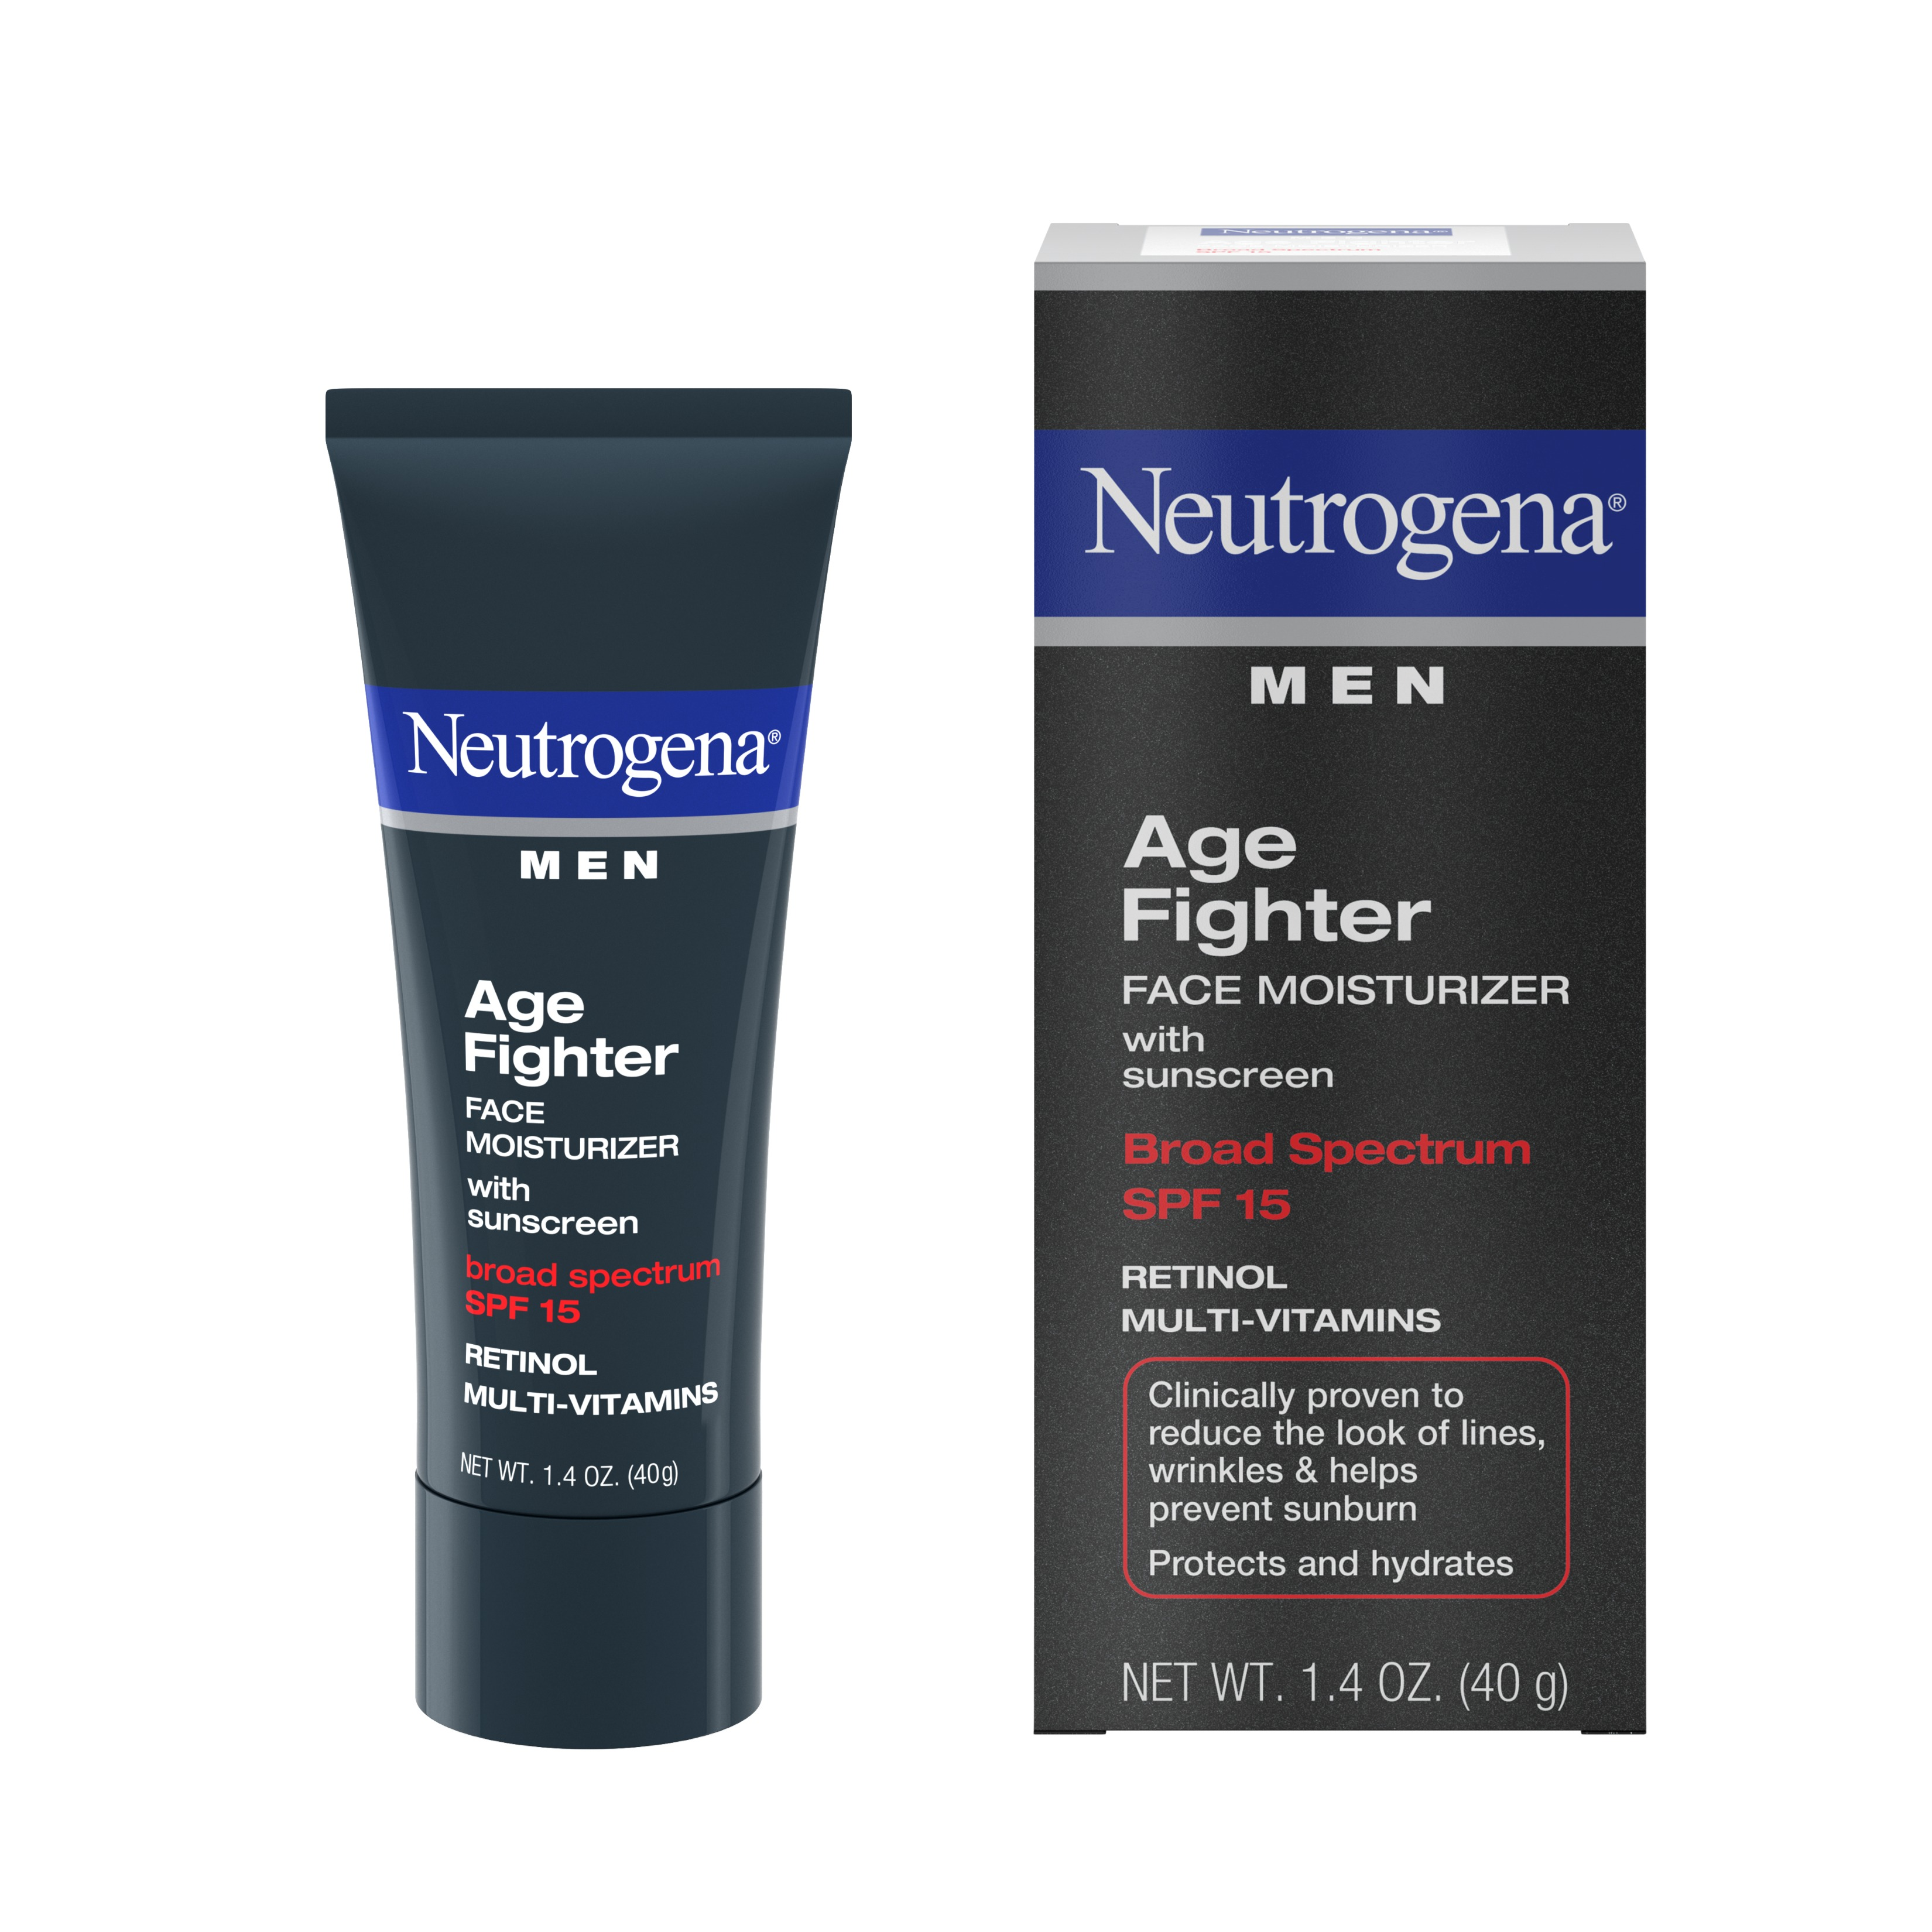 Neutrogena Men's Anti-Wrinkle Age Fighter Moisturizer, SPF 15, 1.4 oz